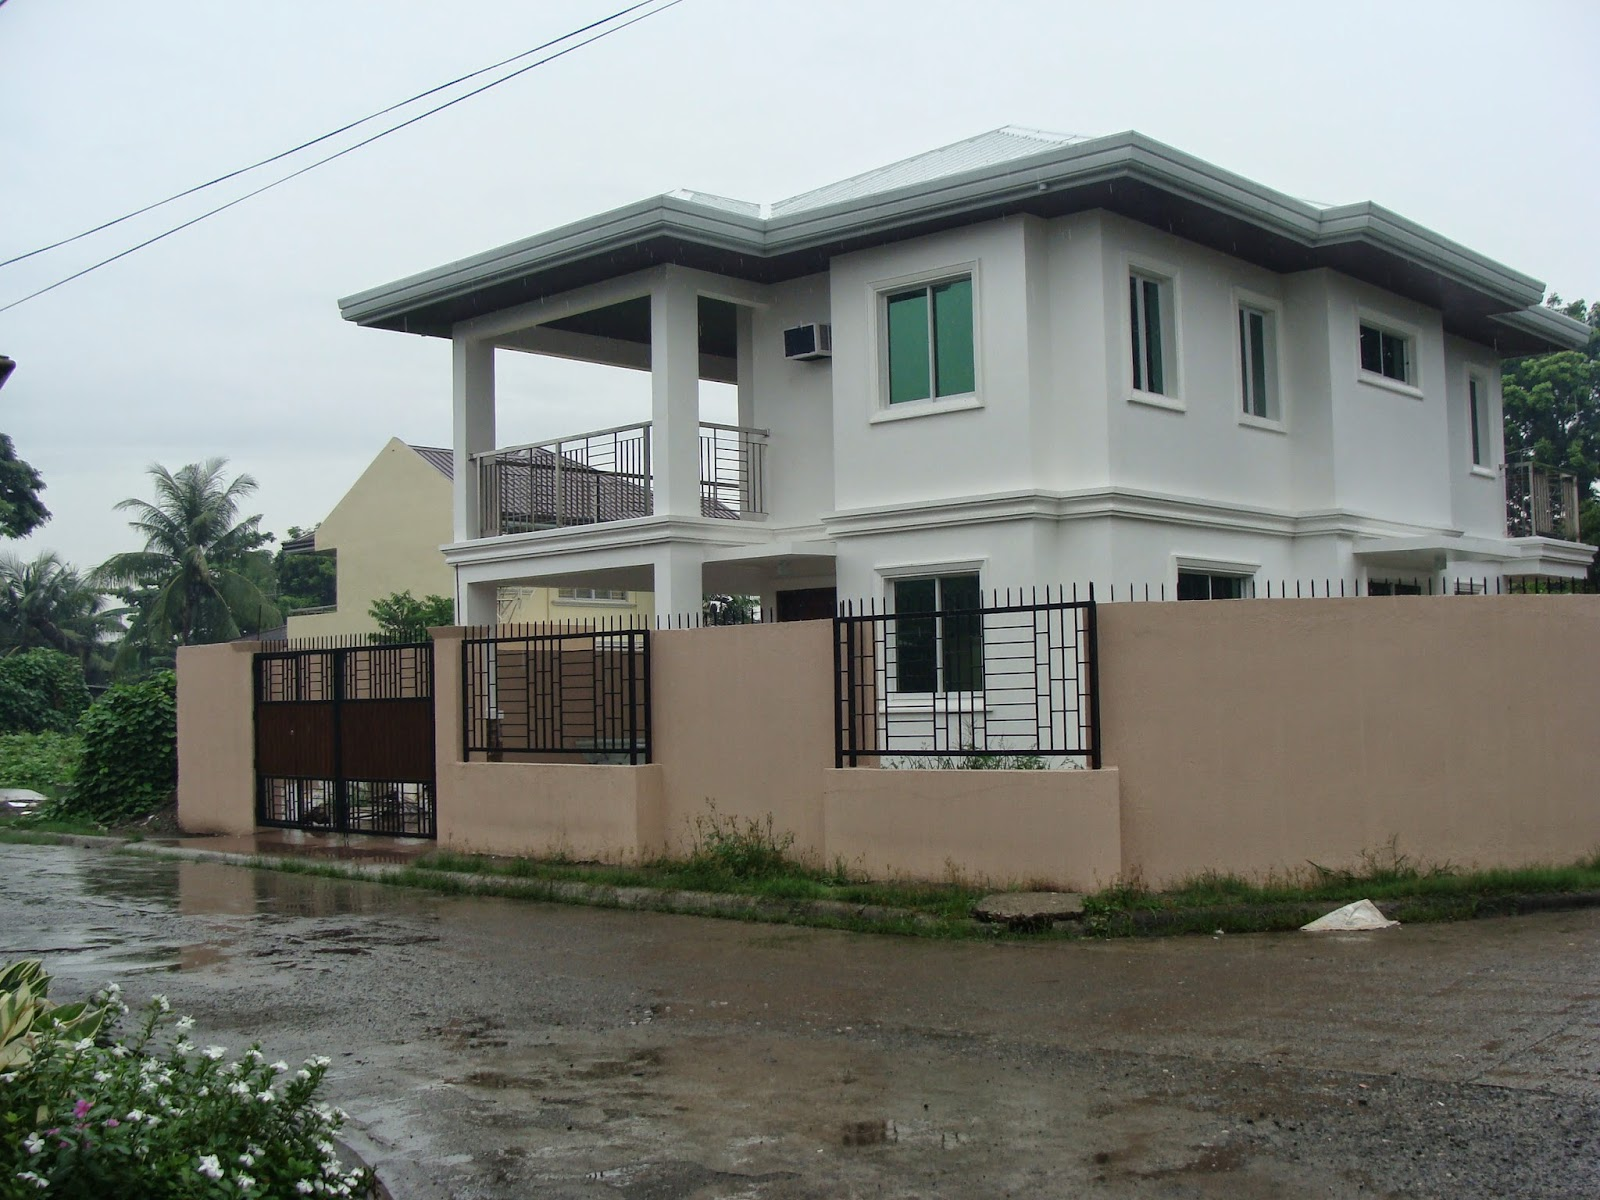 House Plans And Design House Design Two Story Philippines: 2 story home designs